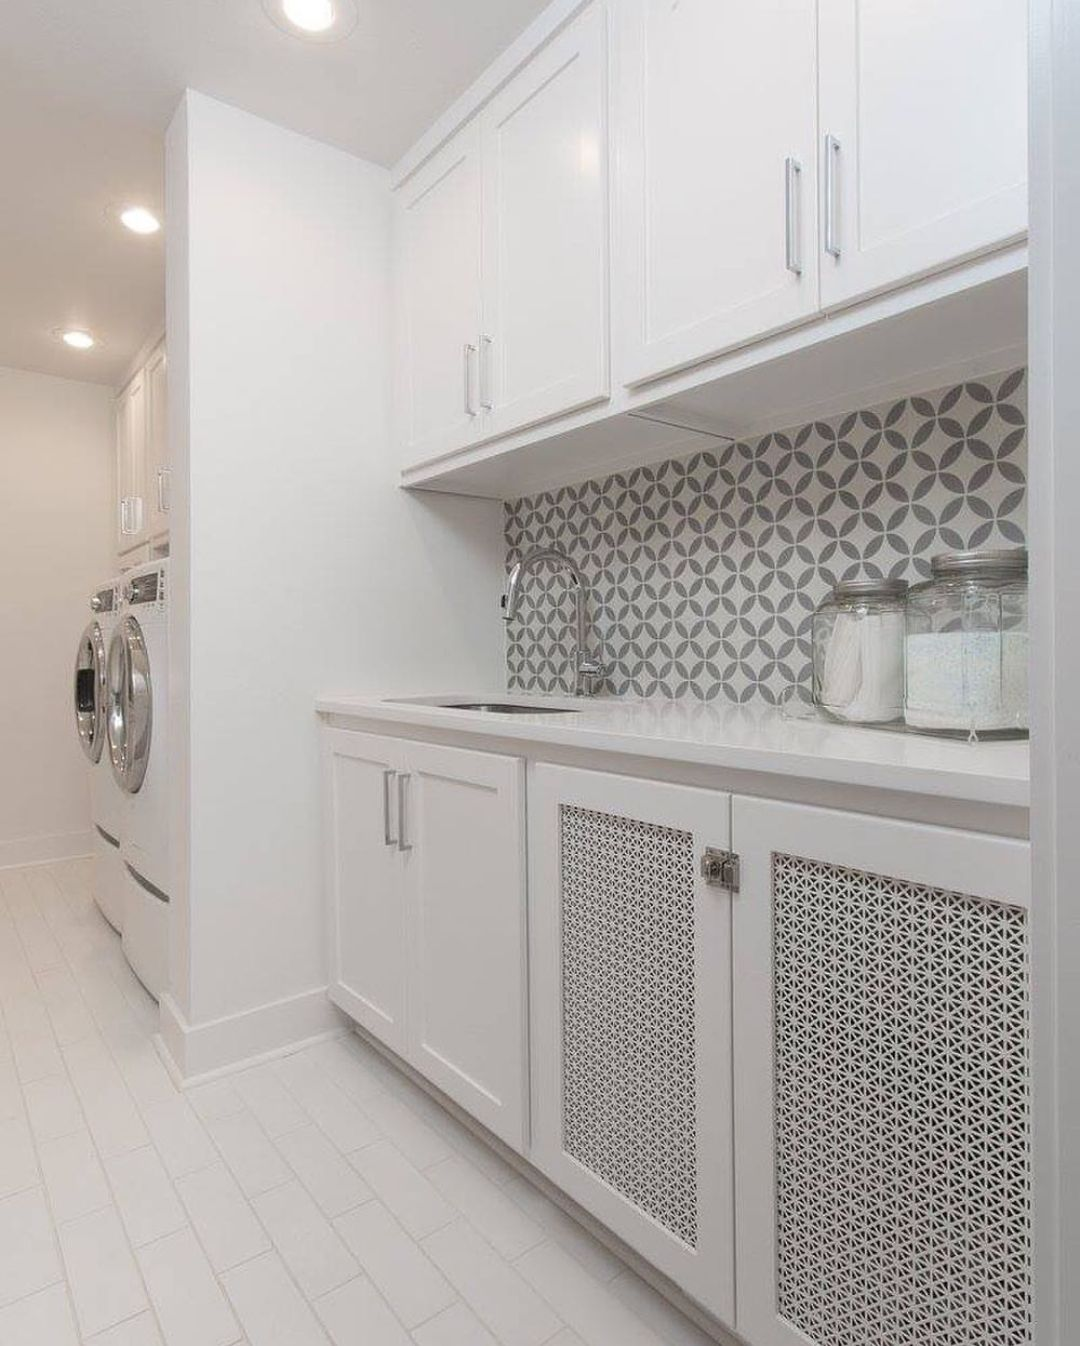 Designer Perforated metal panel infills used in a modern laundry room